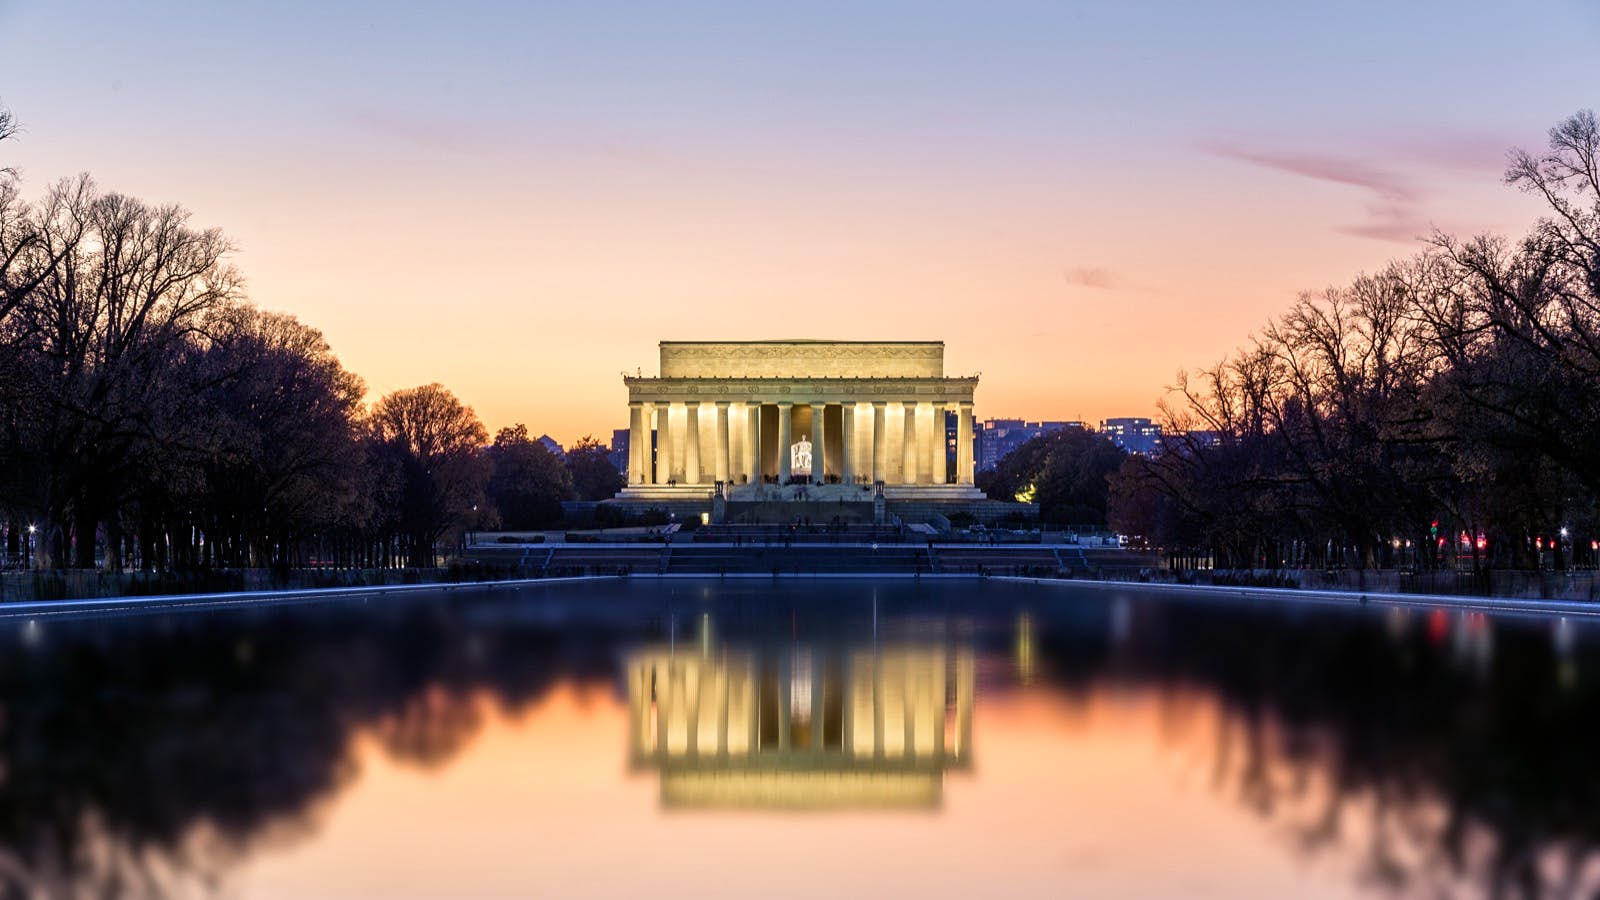 The Lincoln Memorial lit up at night reflected in the pond below. A trip to Washington isn't complete without a selection from the audiobooks for US road trips.